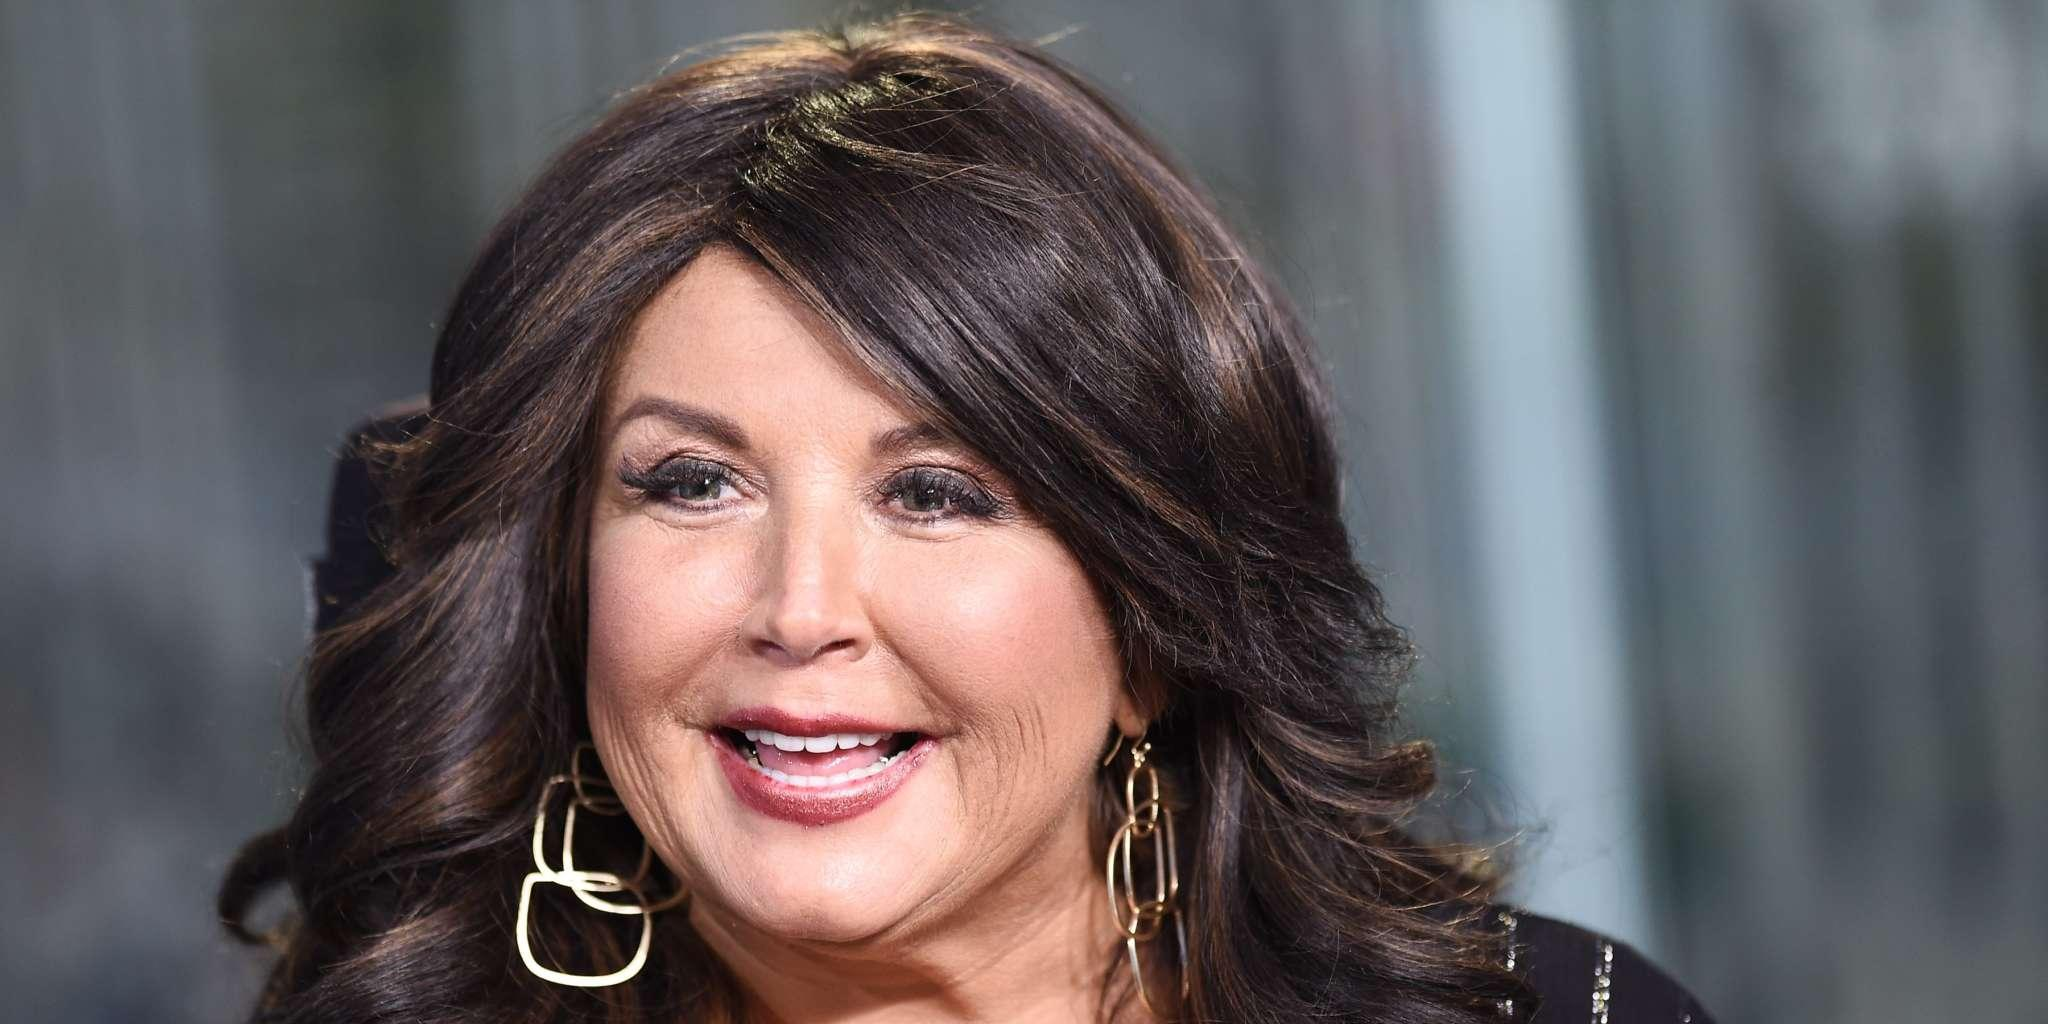 Abby Lee Miller Shares Old Pic From When She Was A Teen Rocking White Spandex Tights And Leg Warmers!